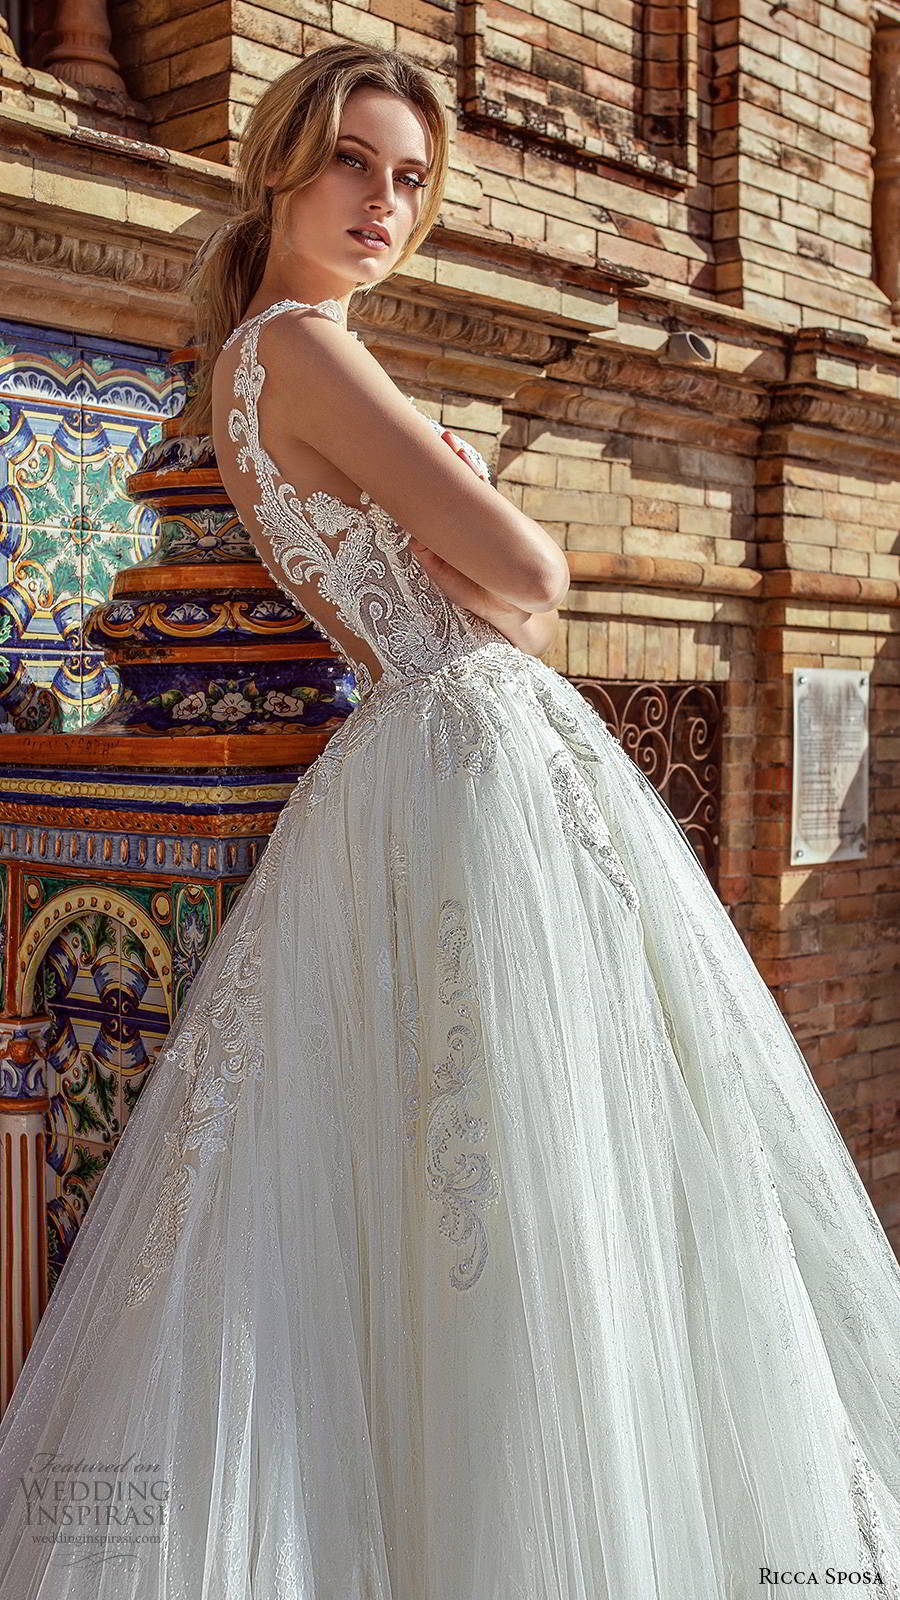 ricca sposa 2019 bridal illusion cap sleeves jewel neckline embellished bodice romantic princess a line ball gown wedding dress illusion back cathedral train (3) zsv